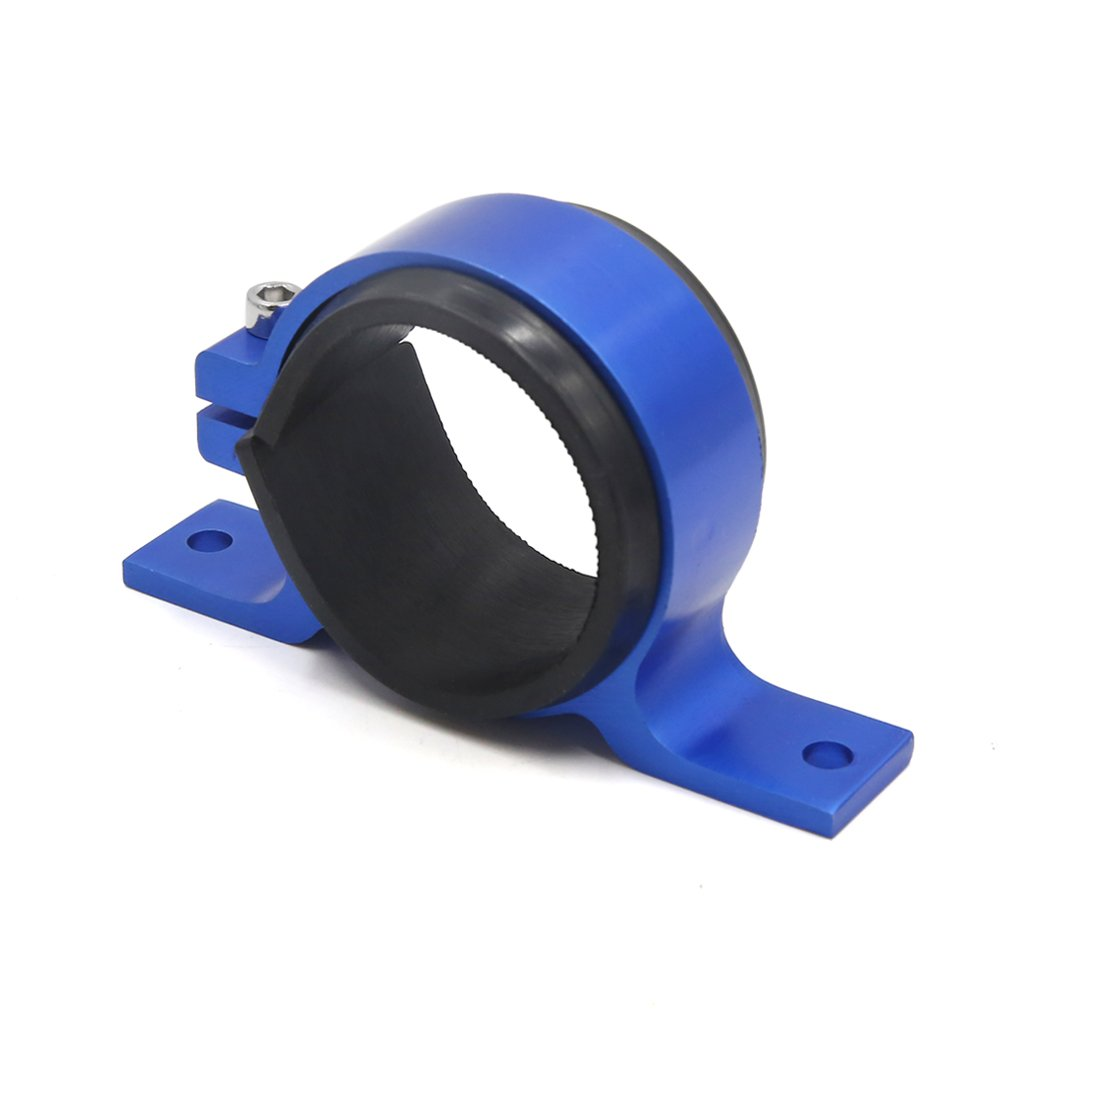 uxcell Blue Aluminum Alloy Fuel Pump Mounting Bracket Clamp Cradle for Car Automobile by uxcell (Image #2)